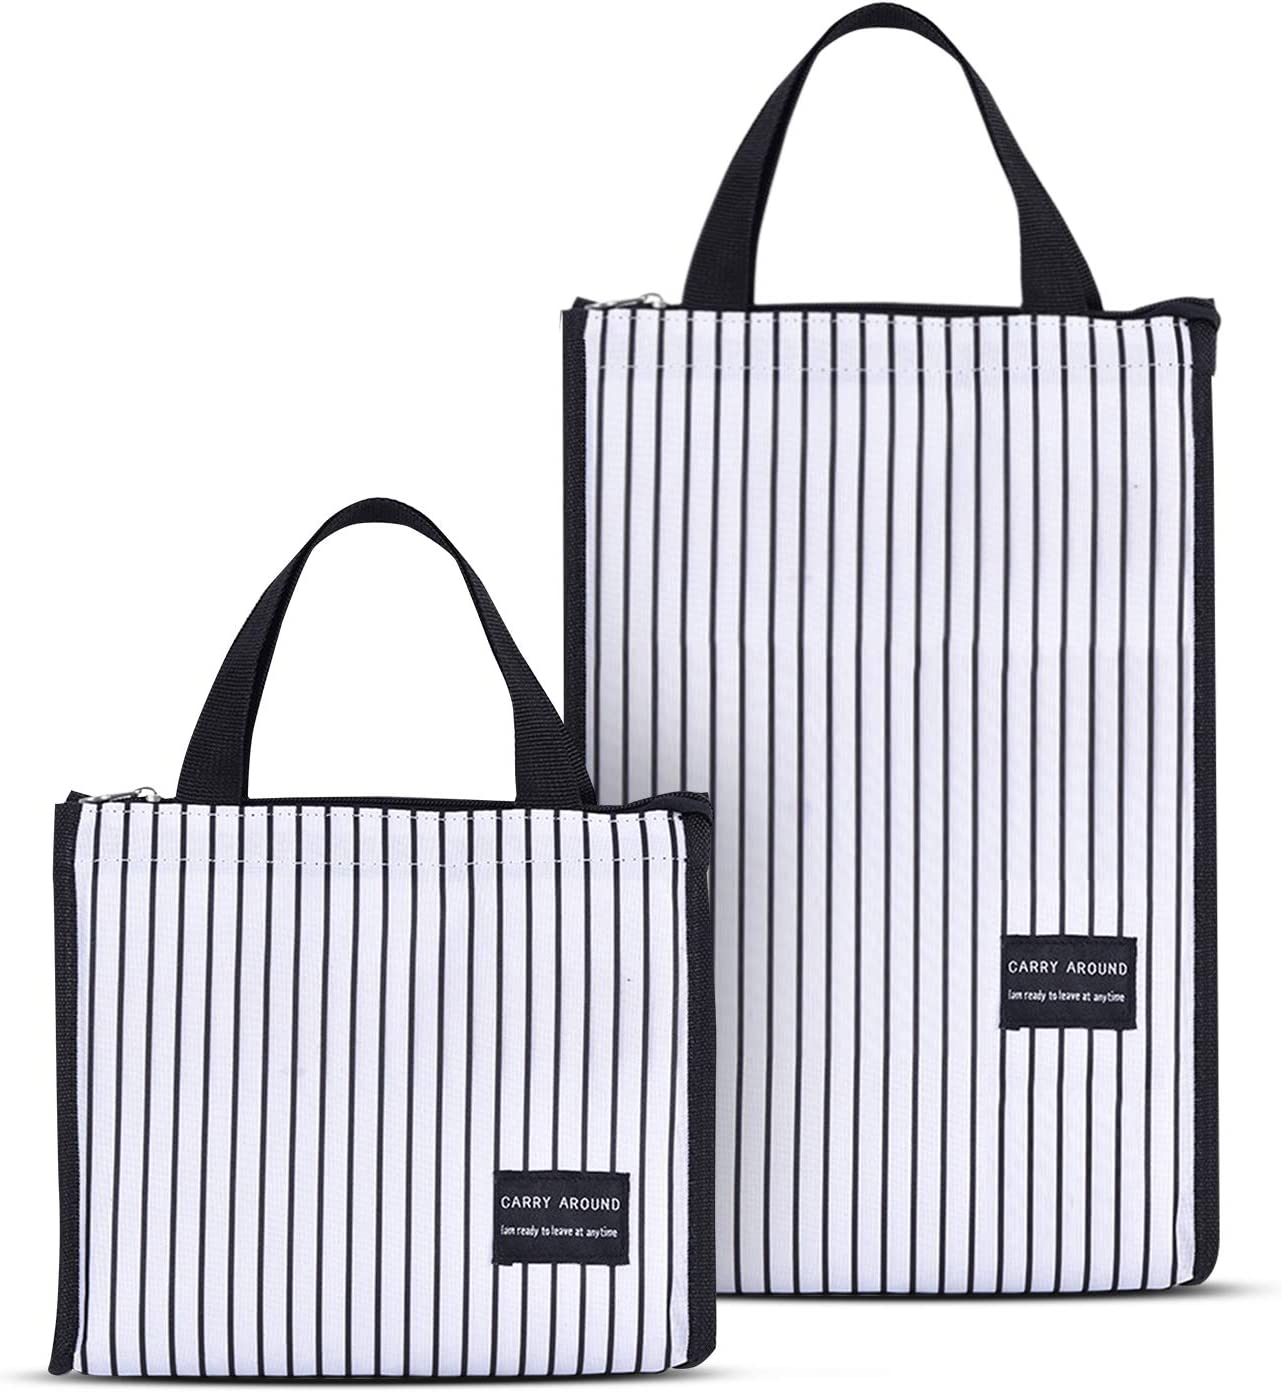 Pack of 2 Insulated Lunch Bag for Women Men, Stylish Lunch Tote Bag, Medium + Large Handbag with Zipper Lunch Box for Work, School, Shopping (Stripe)